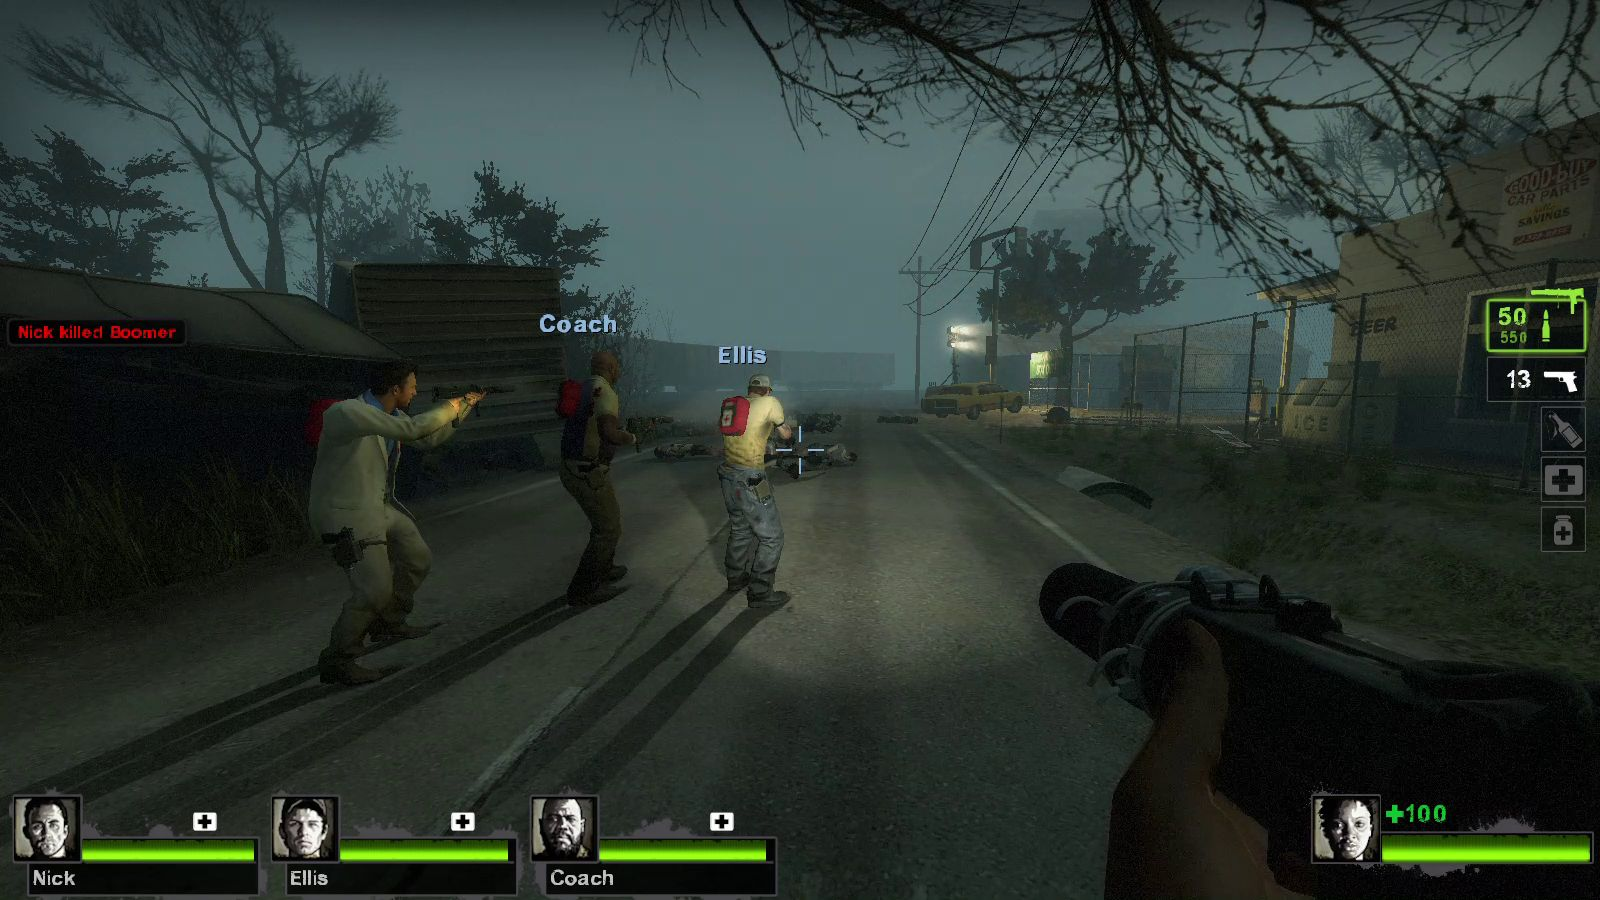 download setup of Left 4 Dead 2 game for desktop or laptop in highly compressed size